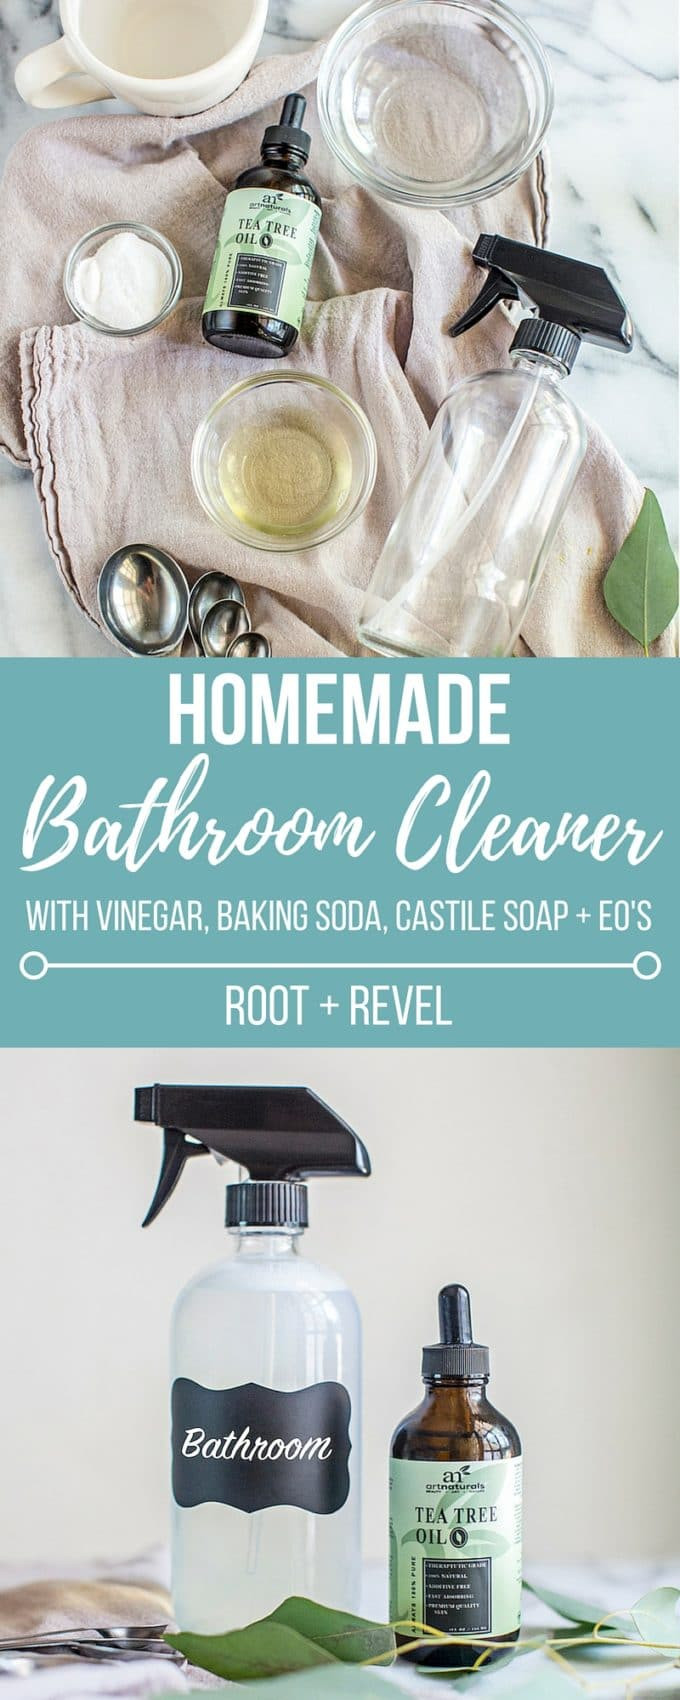 Best ideas about DIY Bathroom Cleaner . Save or Pin Homemade Bathroom Cleaner Now.